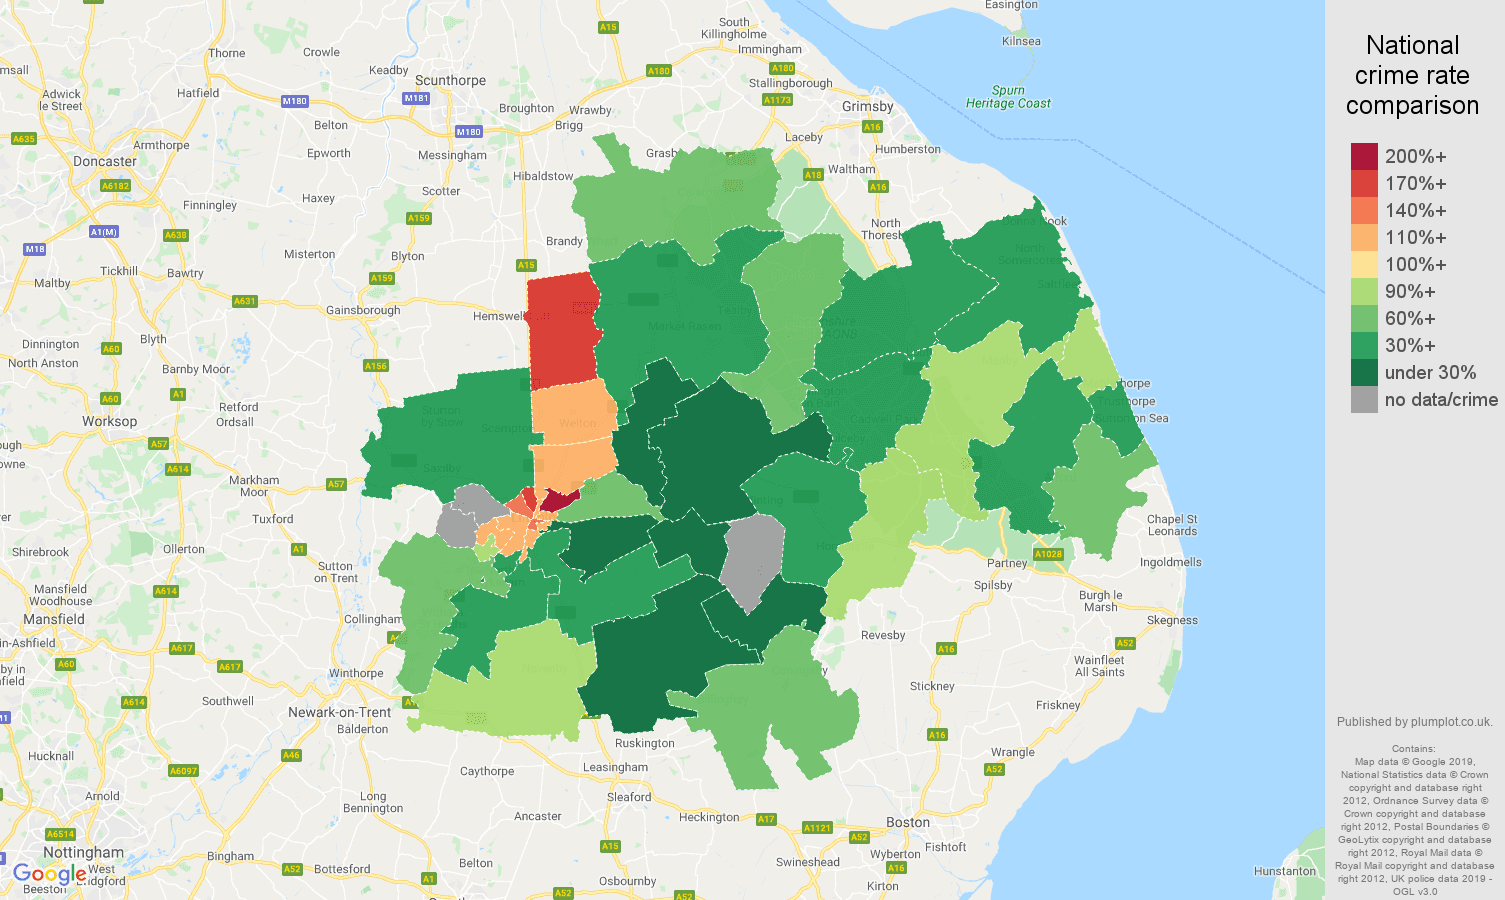 Lincoln other crime rate comparison map